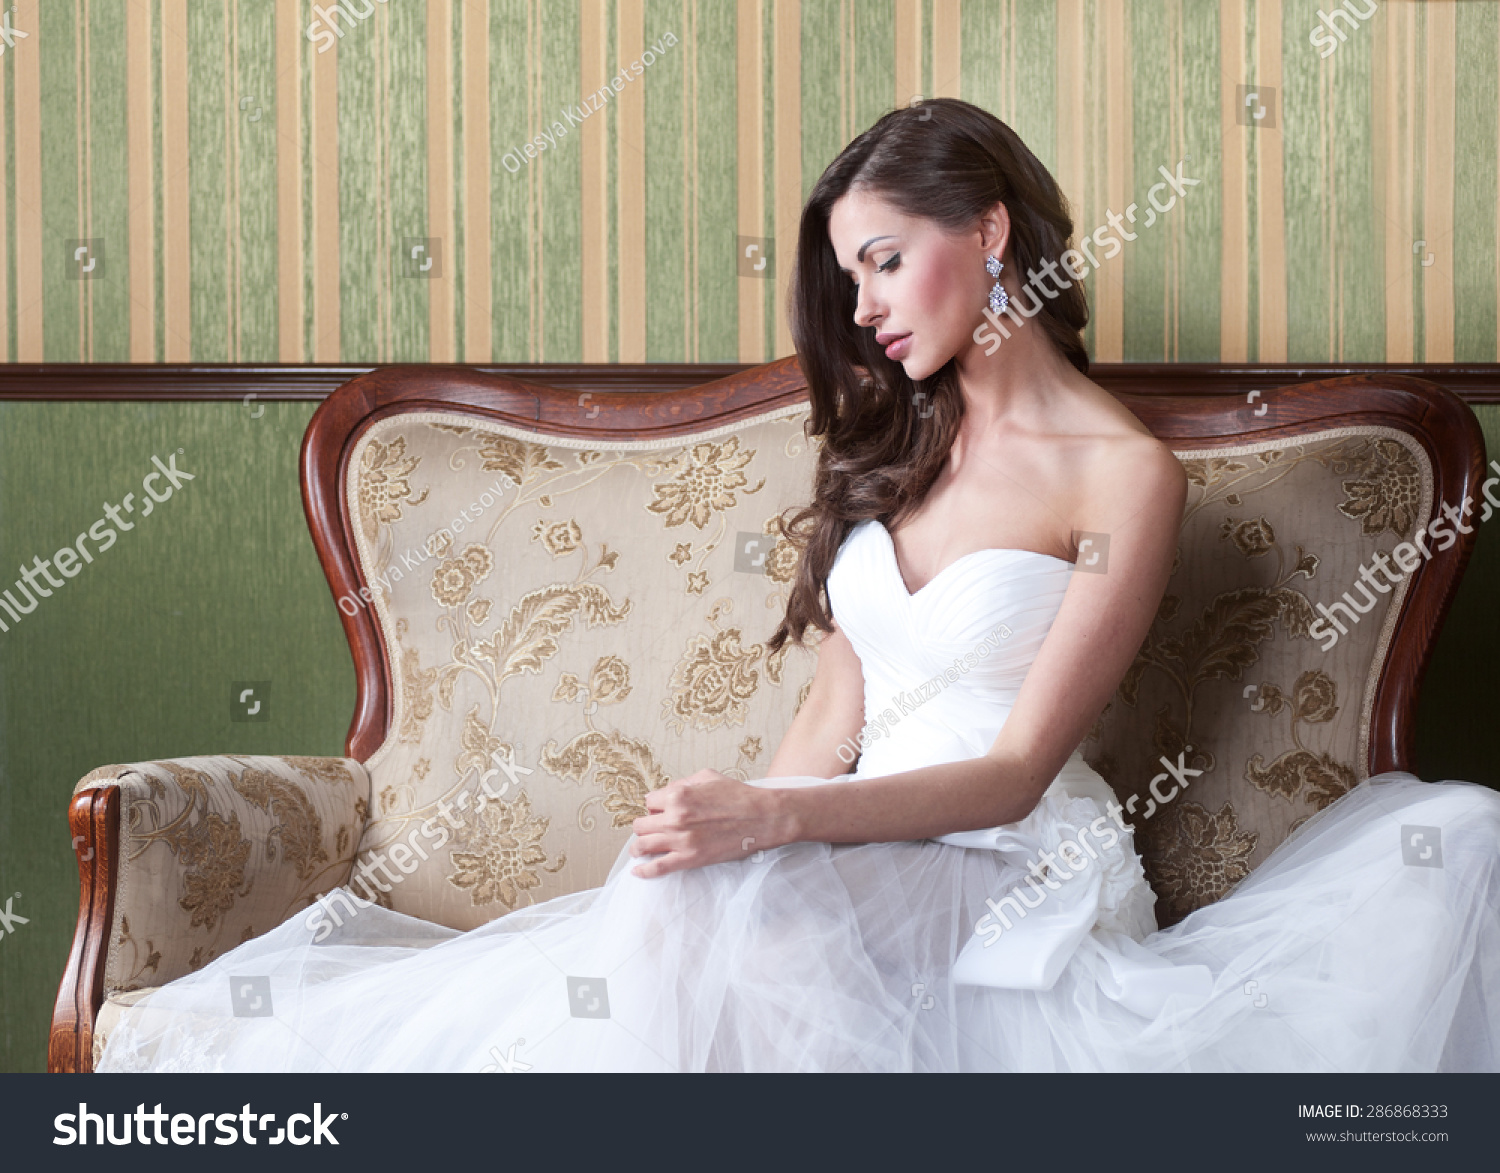 Practices-such inflicting Beautiful bride vintage the